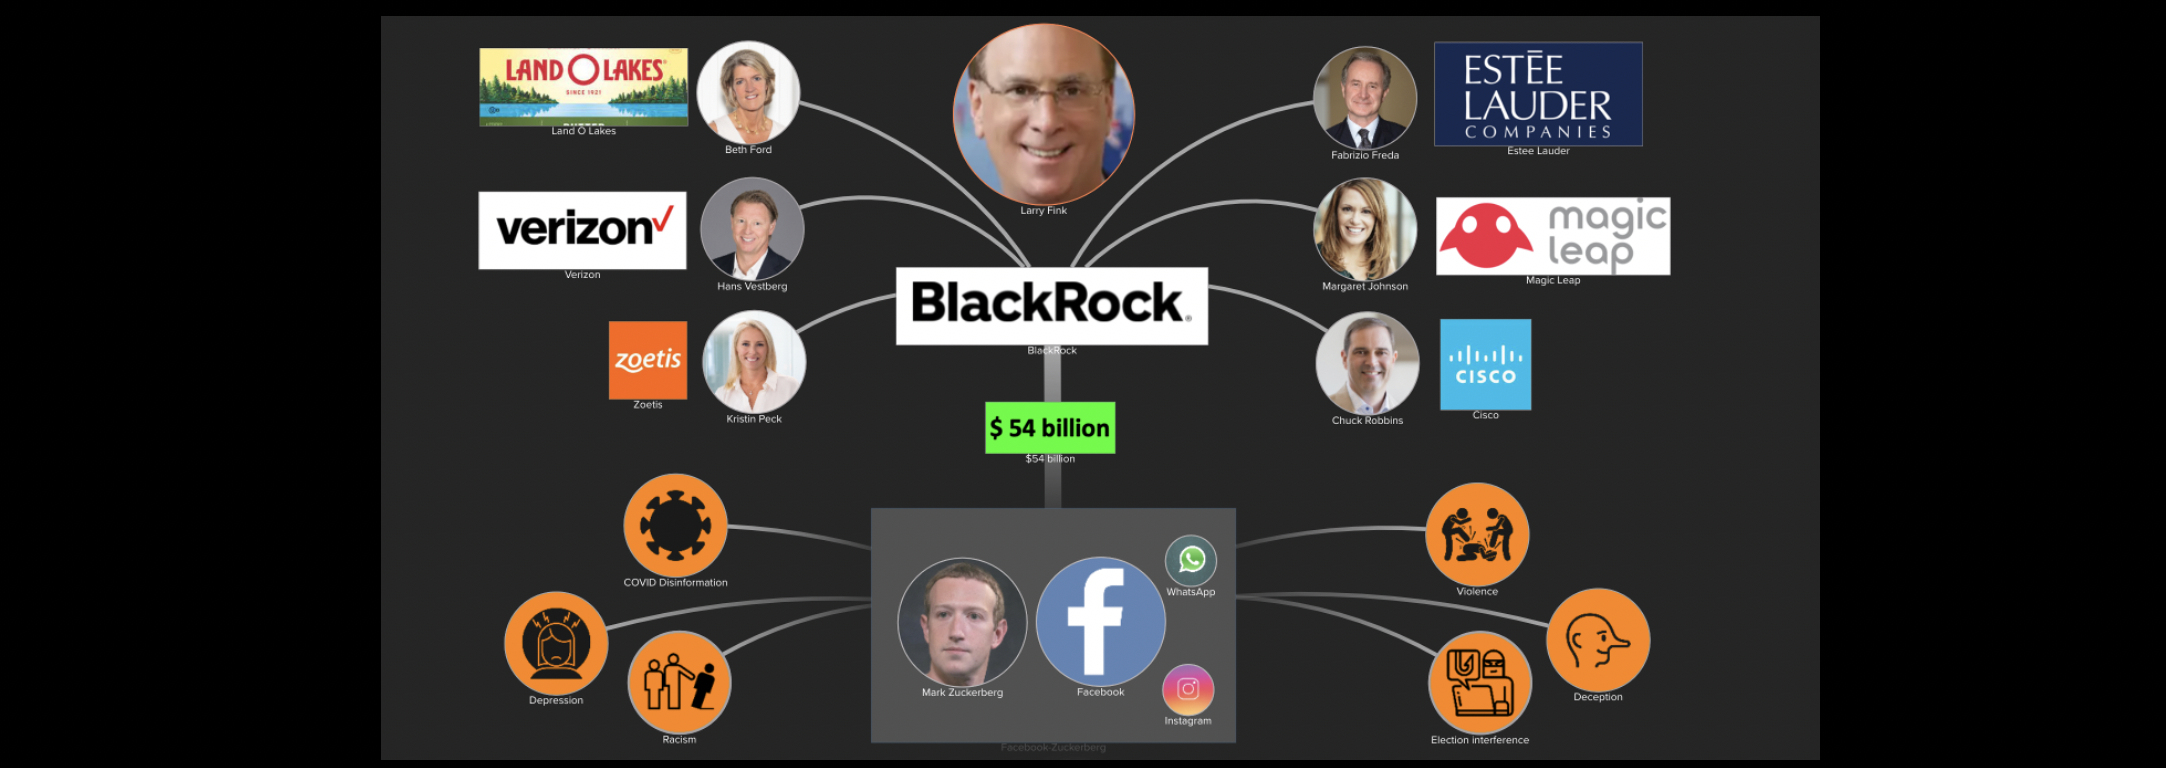 BlackRock invests $54 billion in Facebook whose actions are a danger to society and democracy.